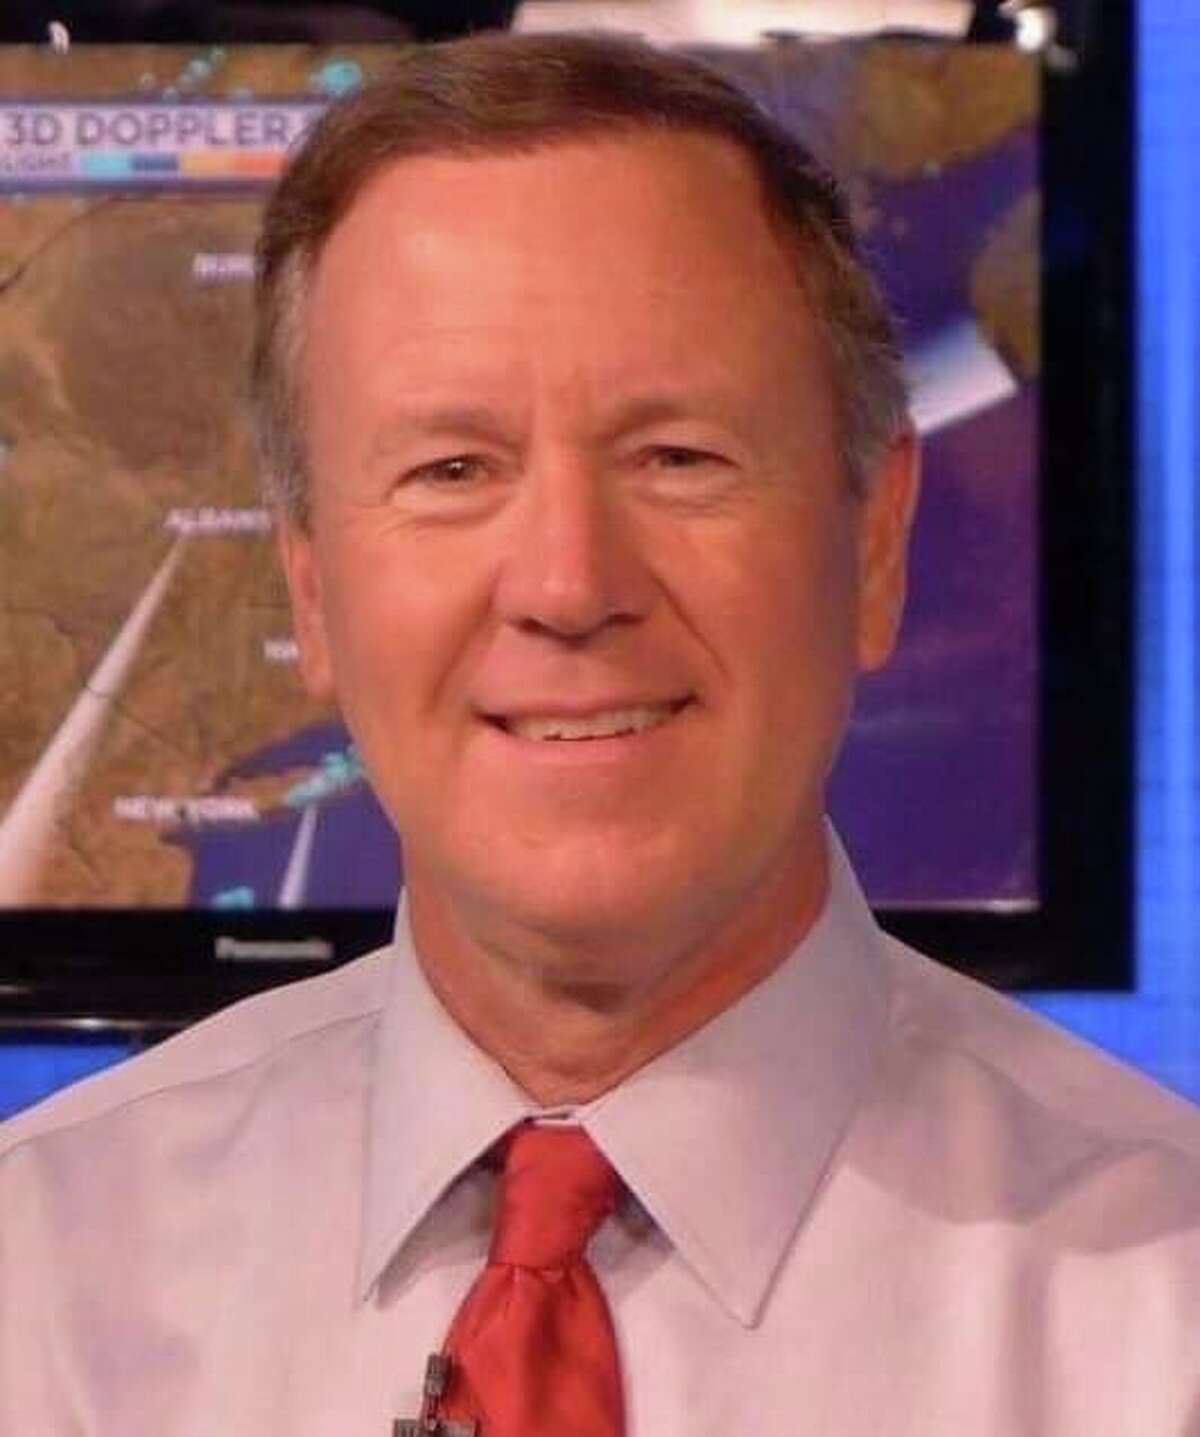 Brad Field was the chief meteorologist for the West Hartford-based NBC Connecticut for 34 years.